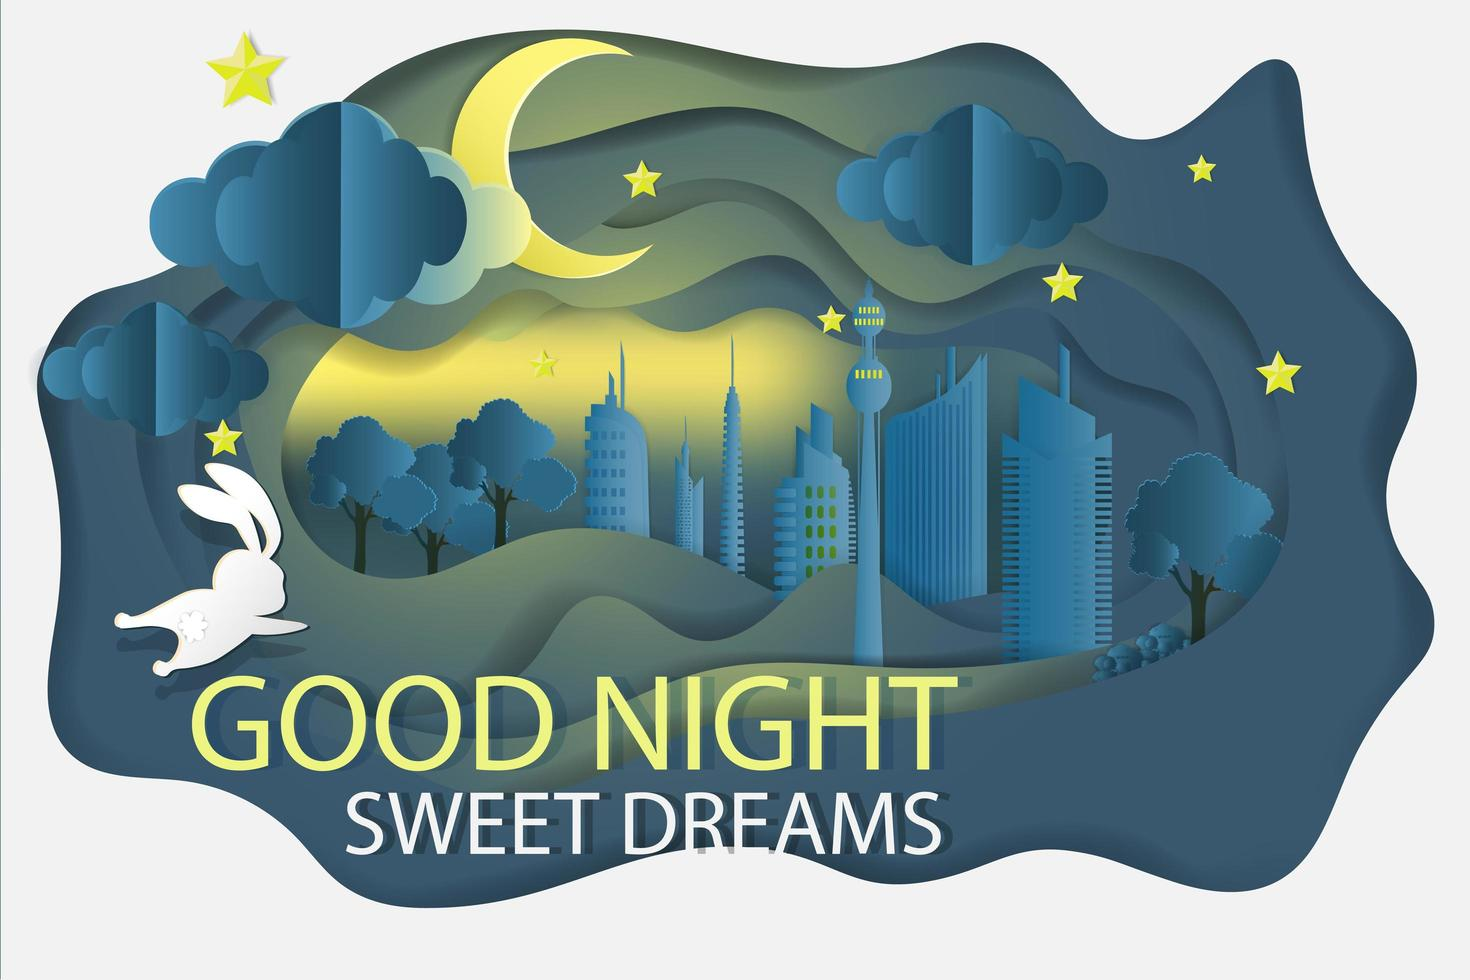 City at Night with Rabbit Sweet Dreams Design  vector